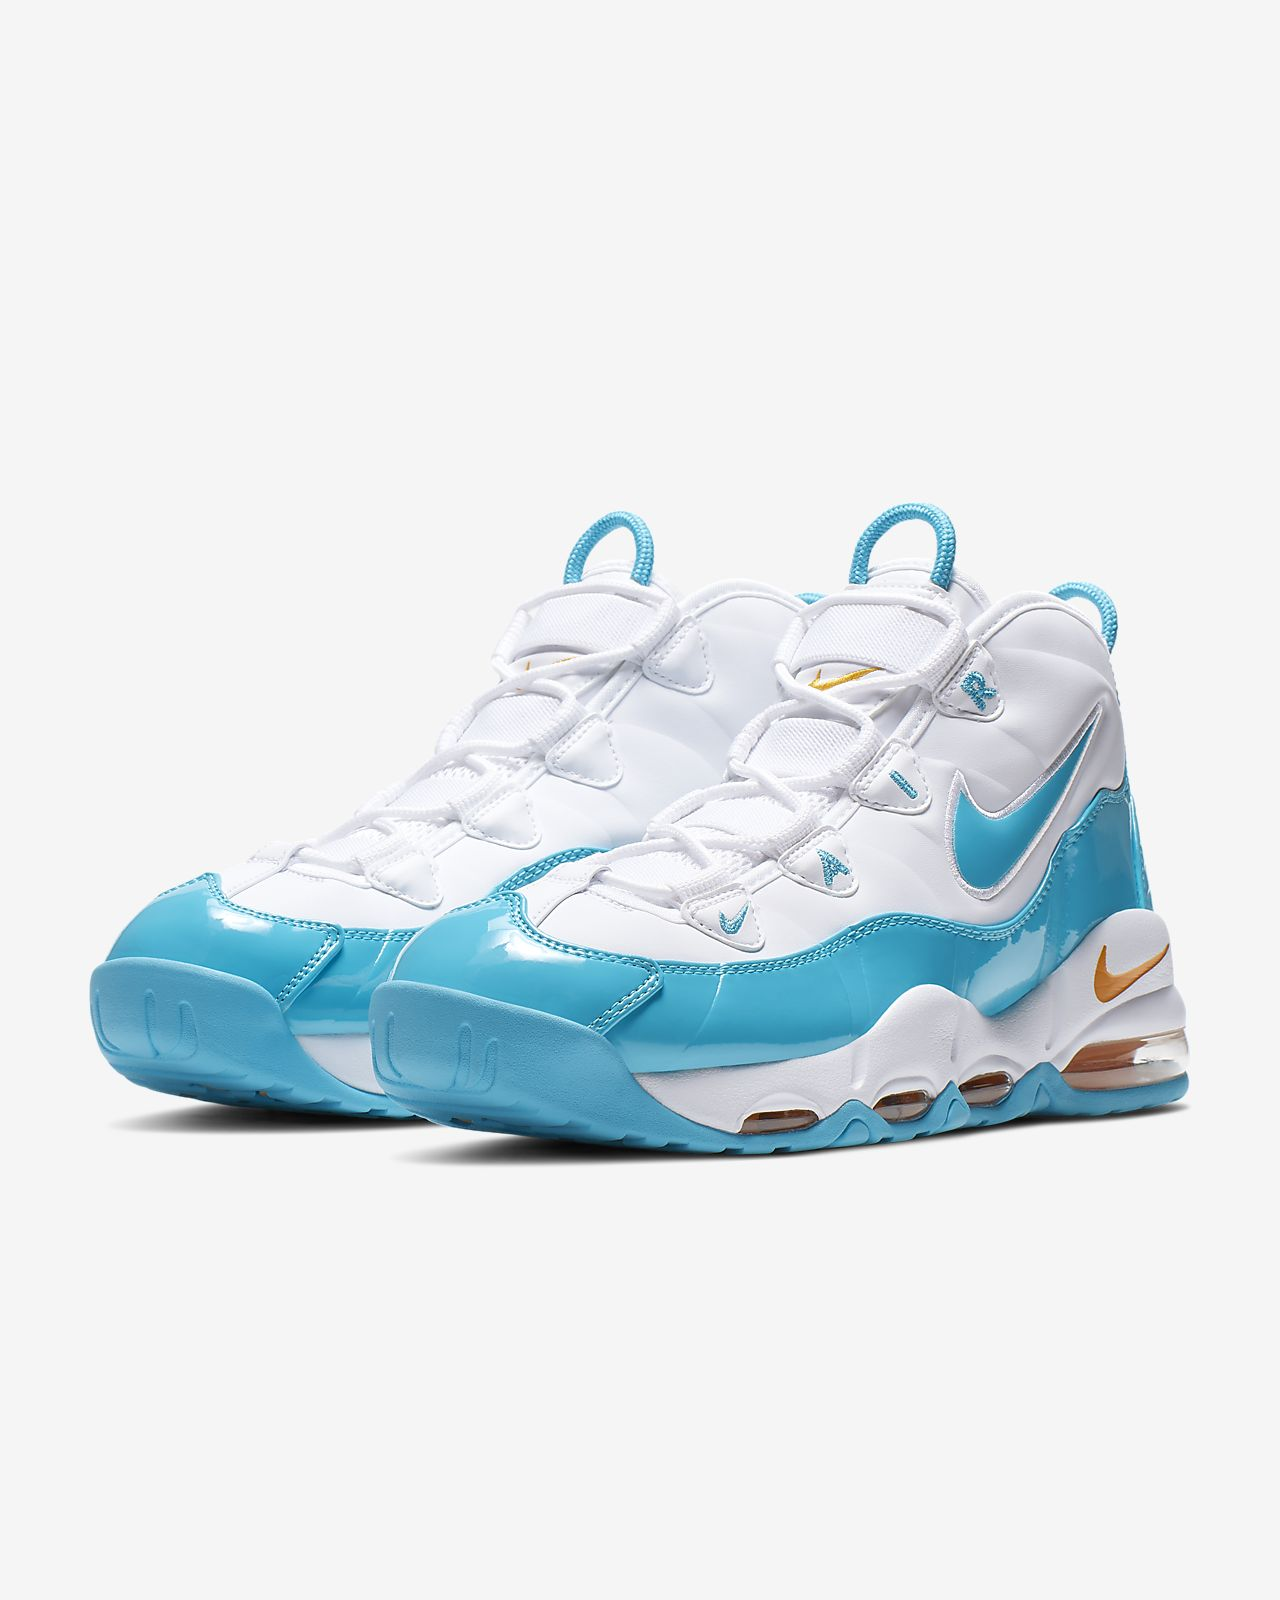 Max Chaussure Uptempo Nike '95 Pour Air Homme gyY76bIfv